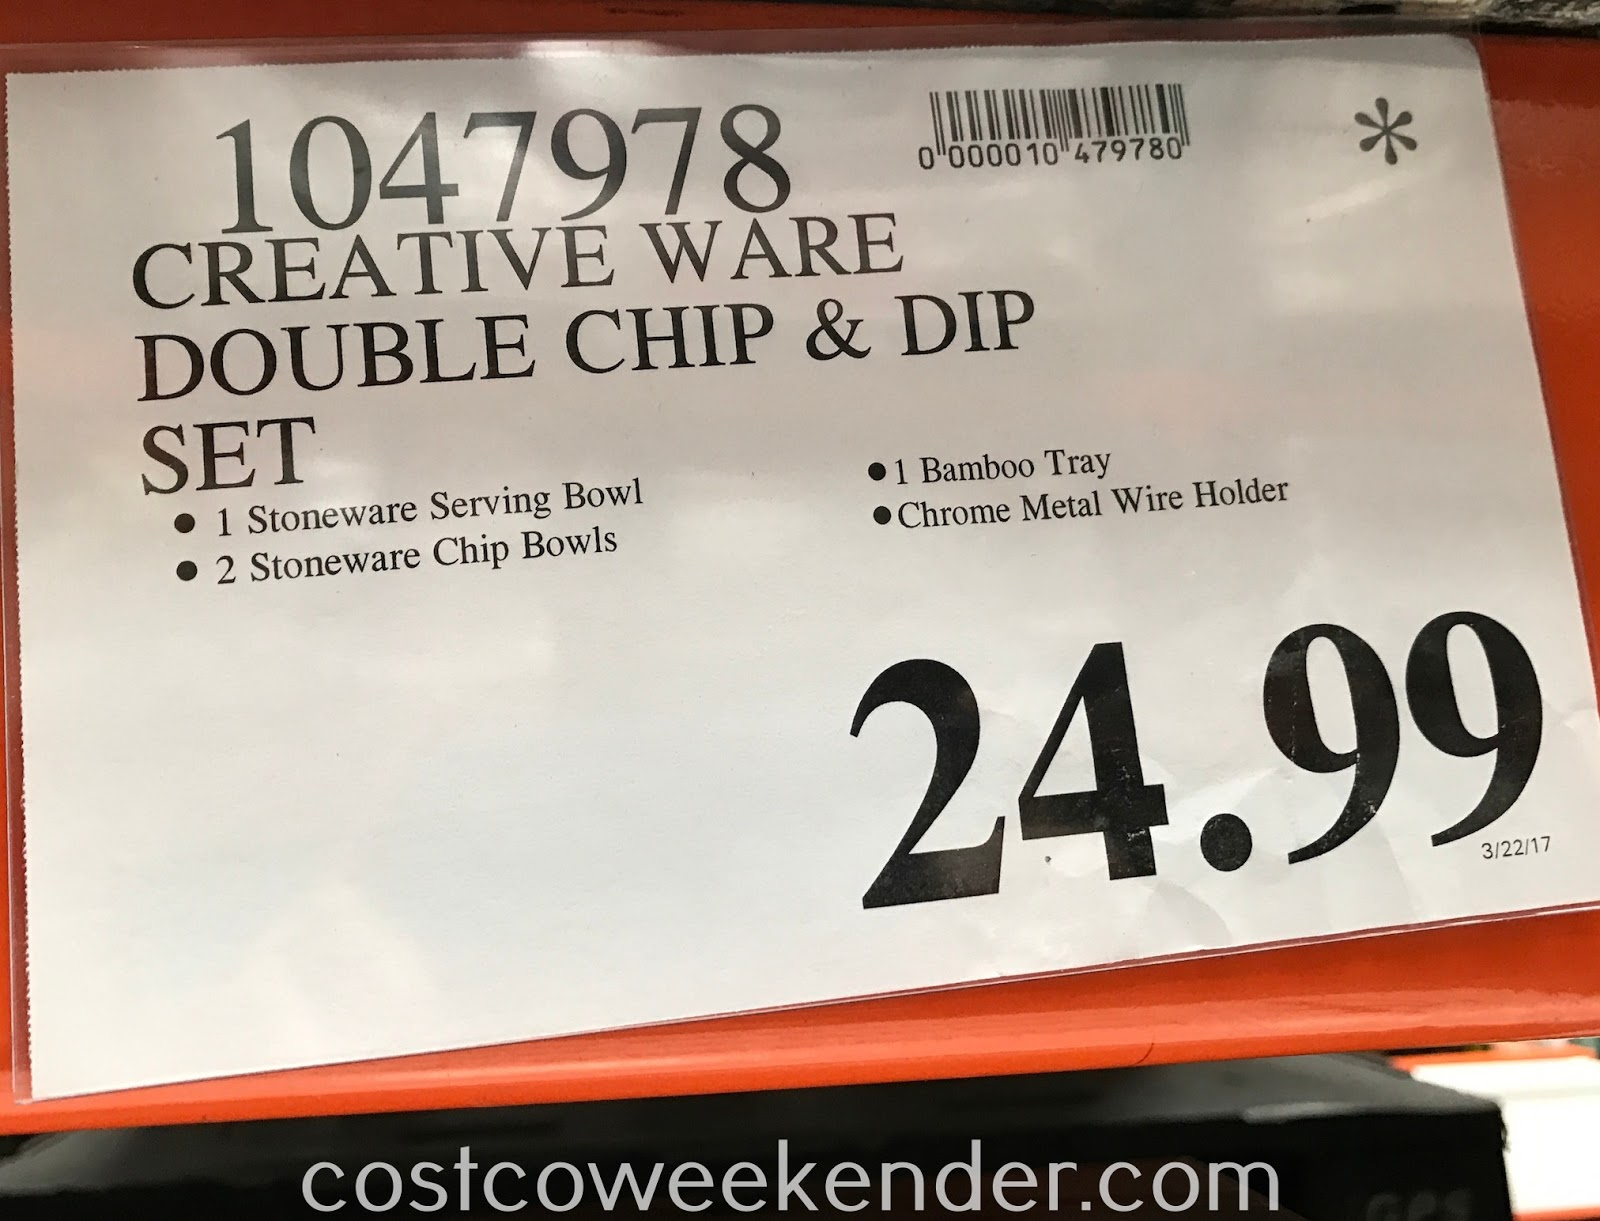 Deal for the CreativeWare Ceramic Serving Set at Costco